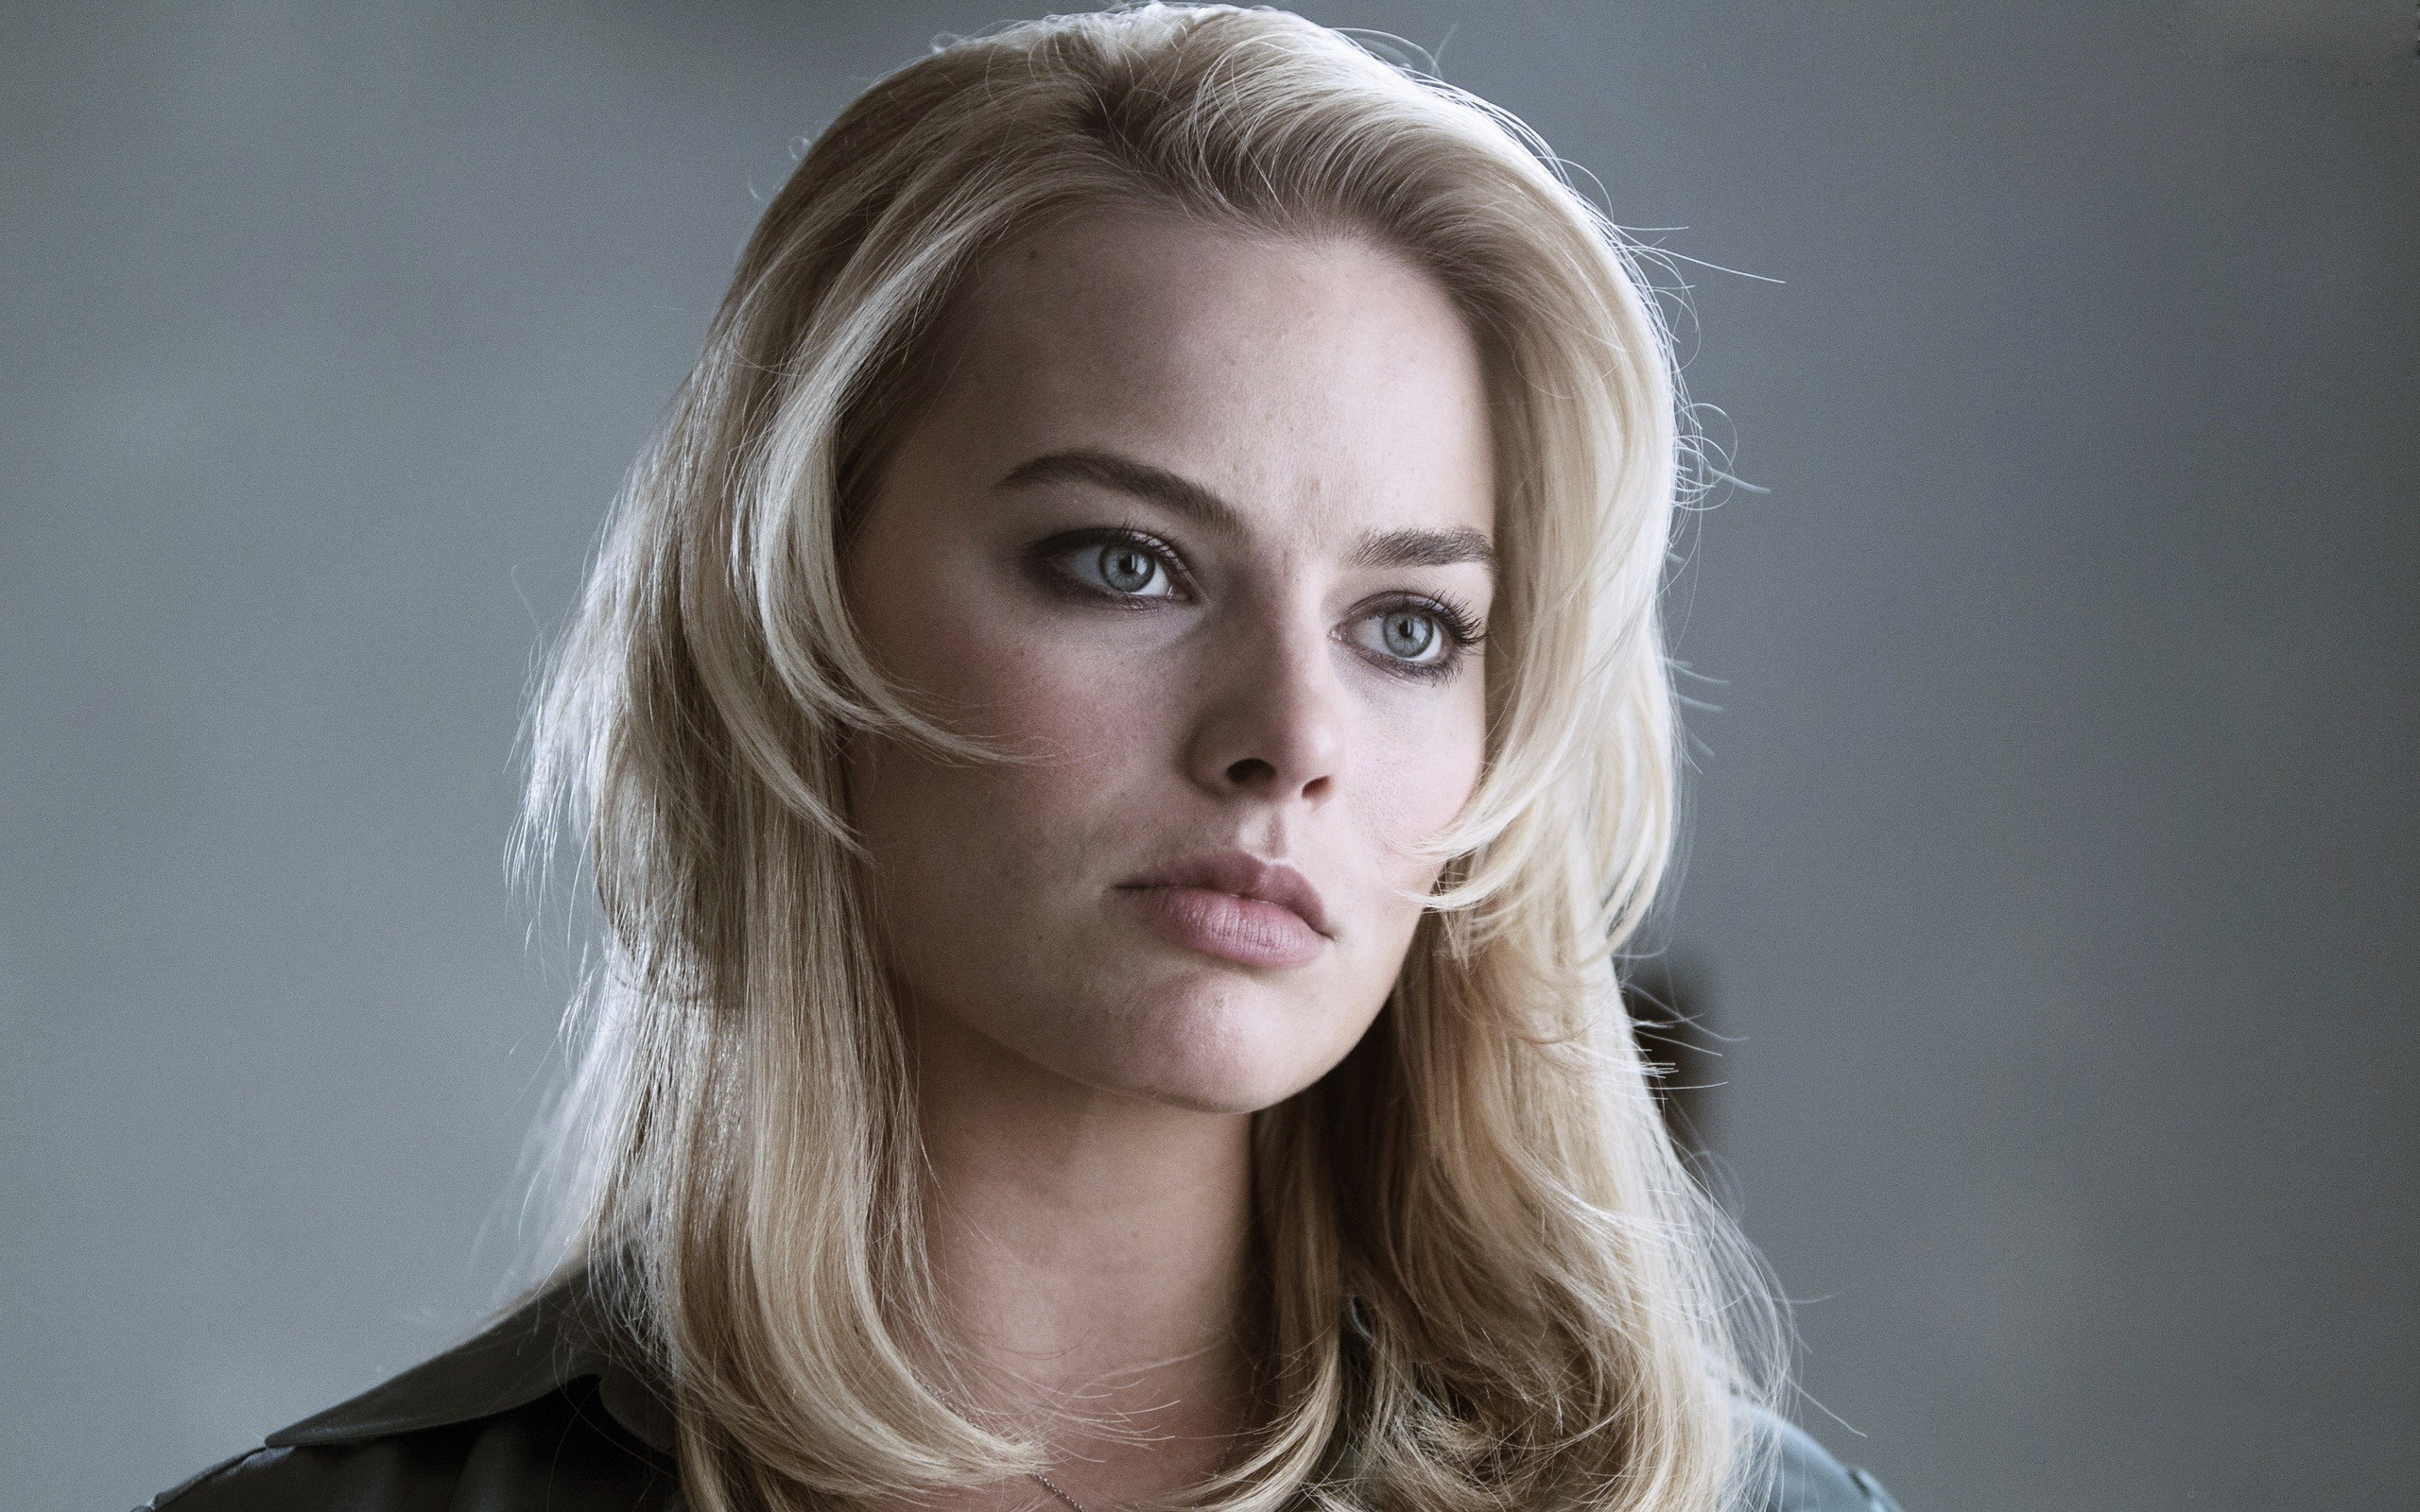 cb8e4e33f0 Download Margot Robbie Widescreen Computer Background 856 2560x1600 ...